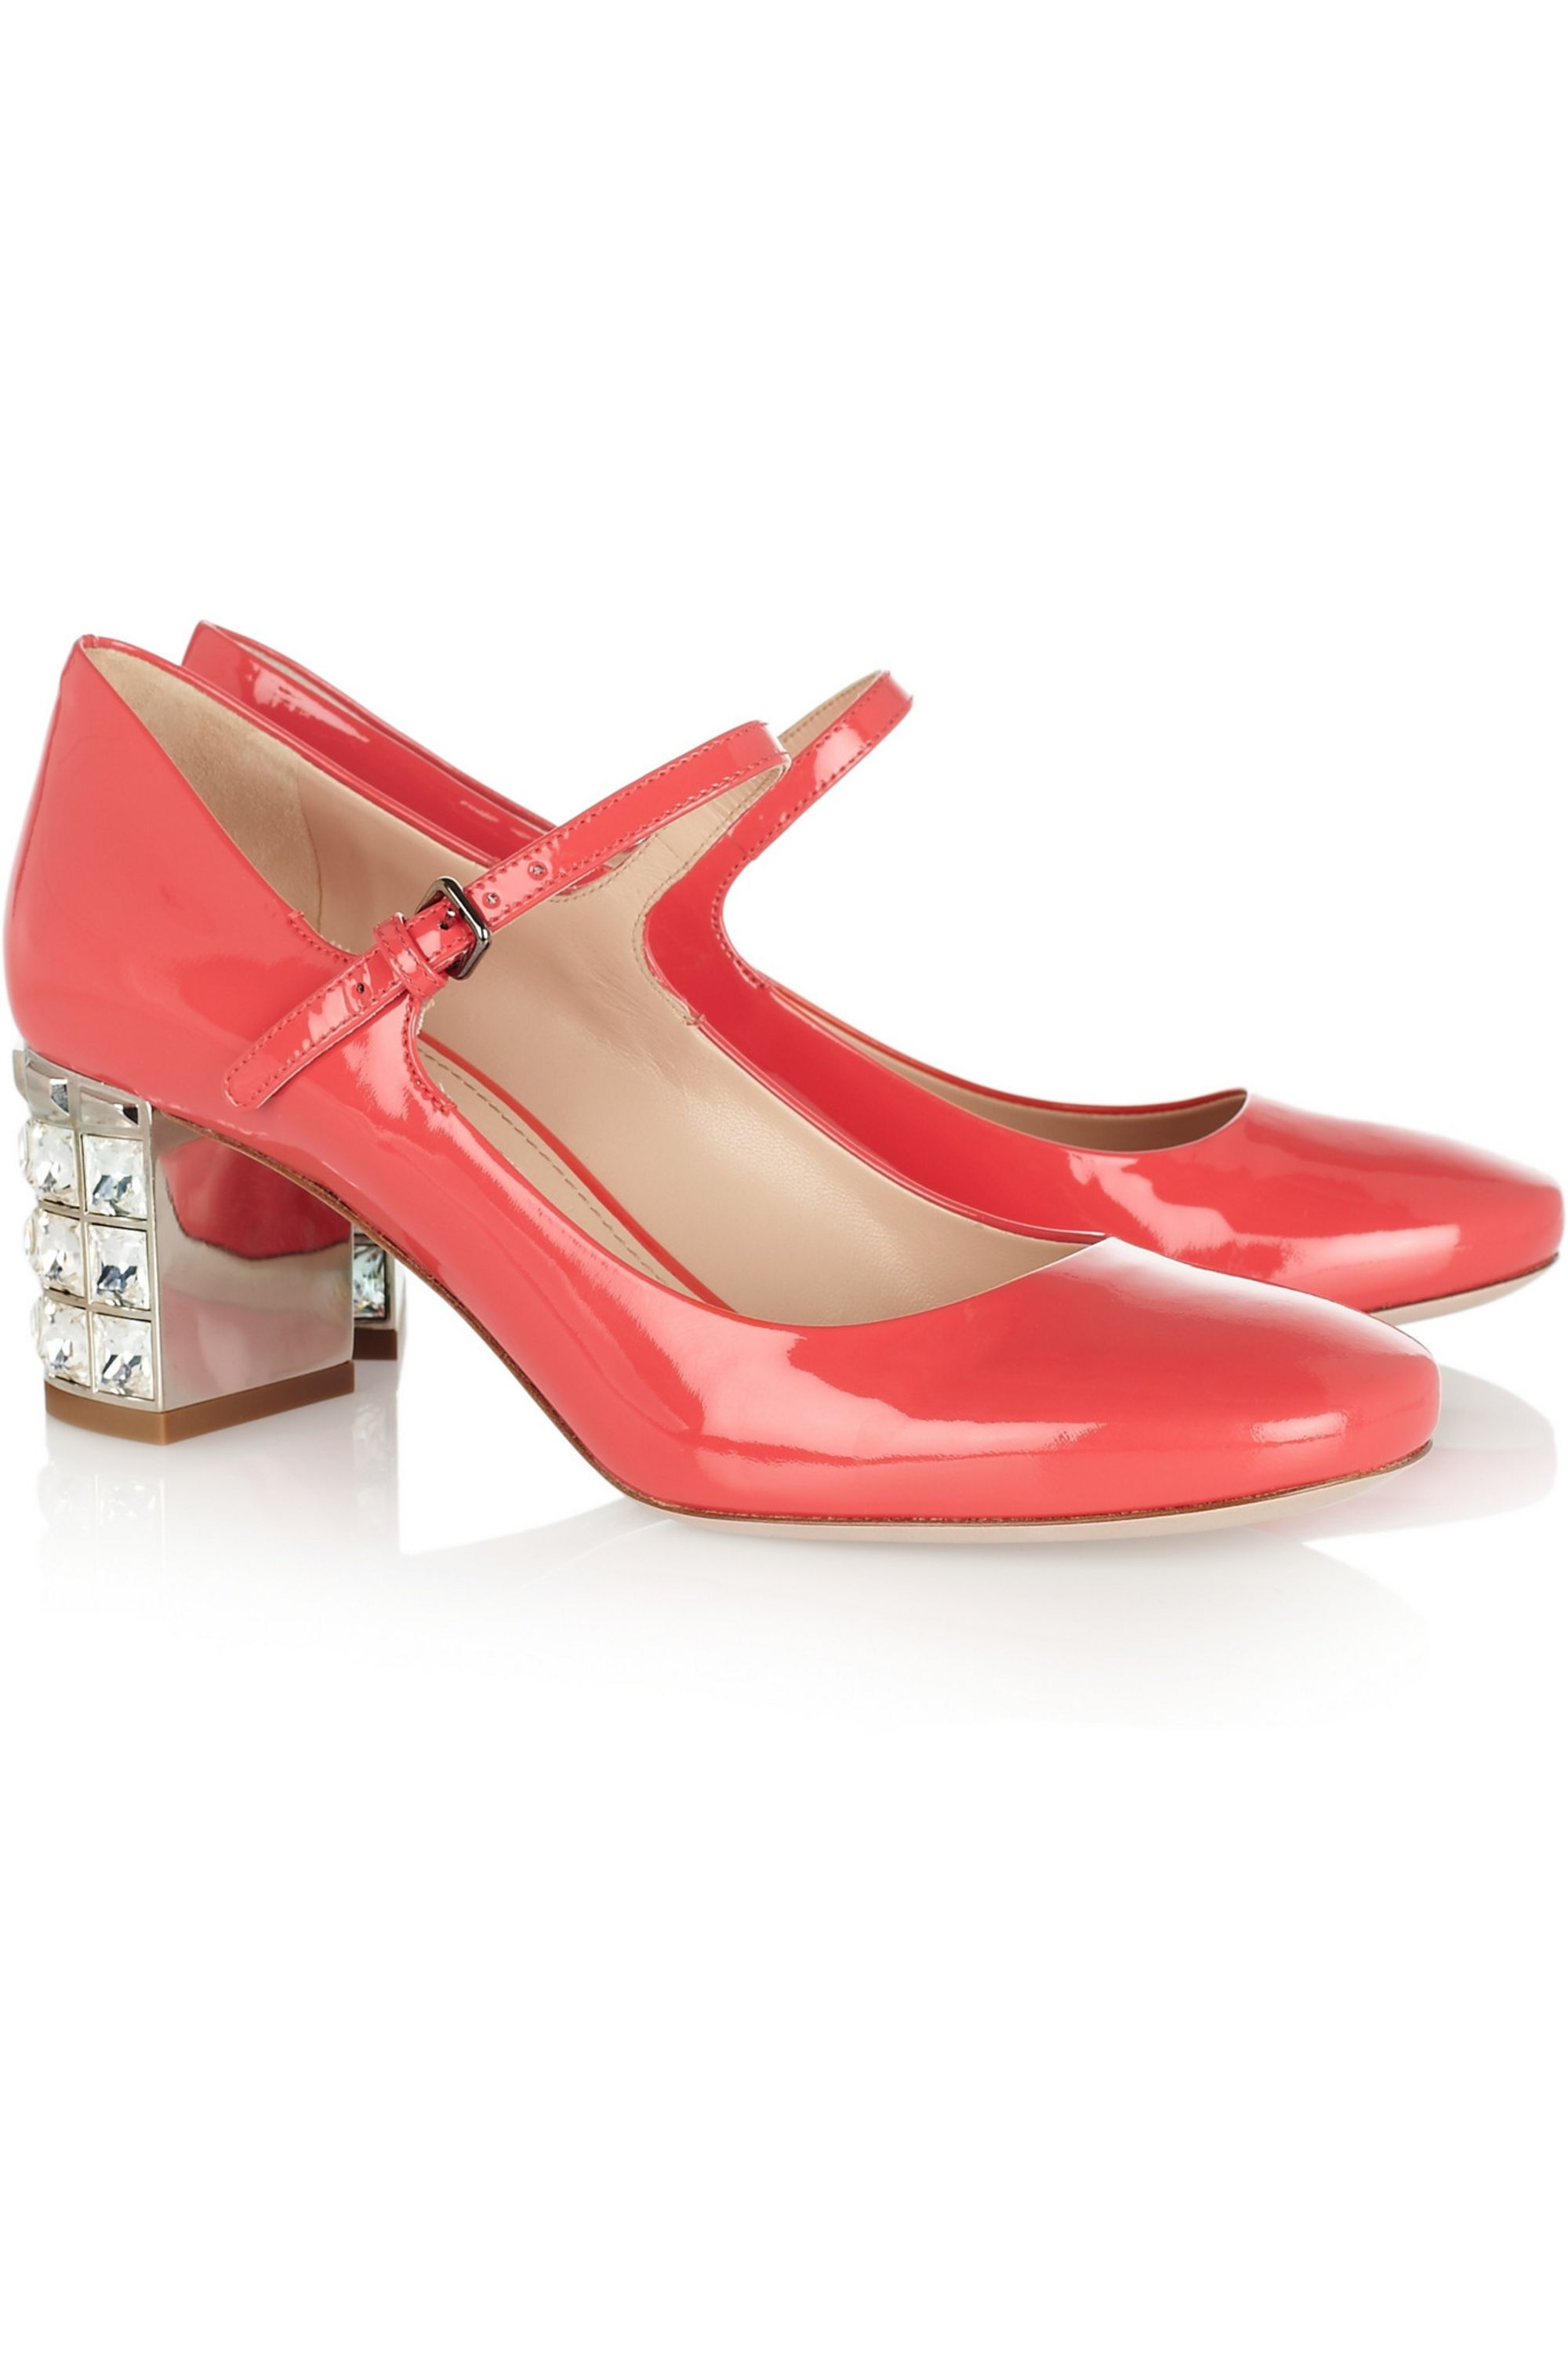 Miu Miu Crystal-embellished patent-leather pumps